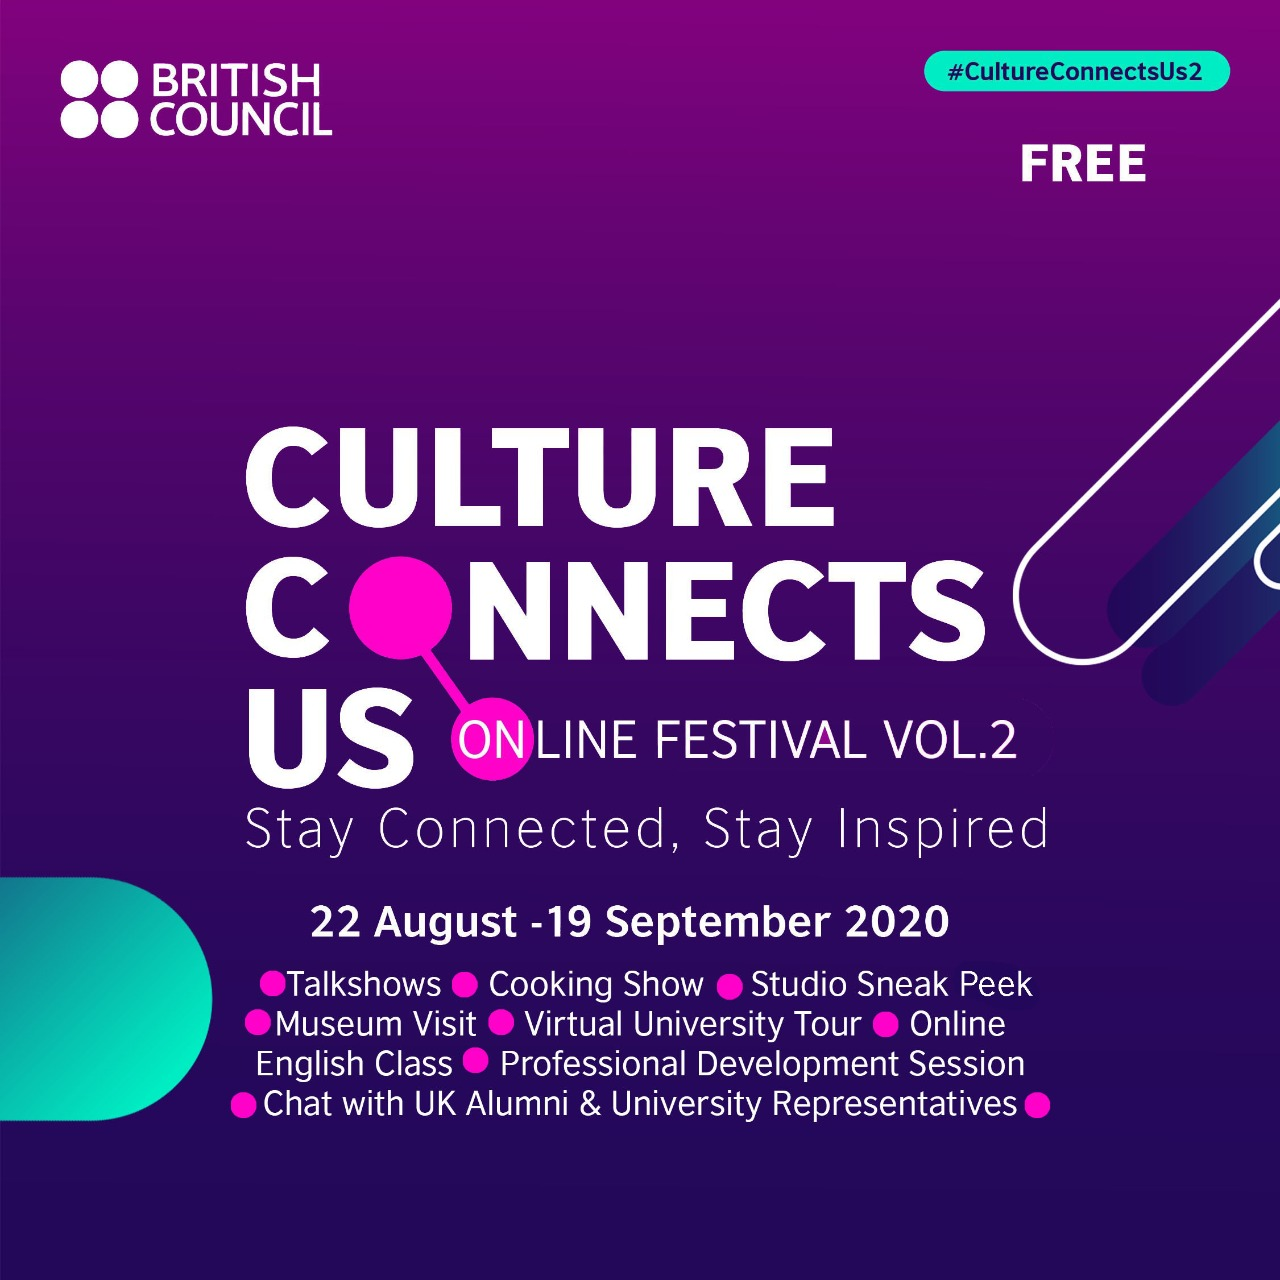 British Council Culture Connects Us Online Festival Volume 2